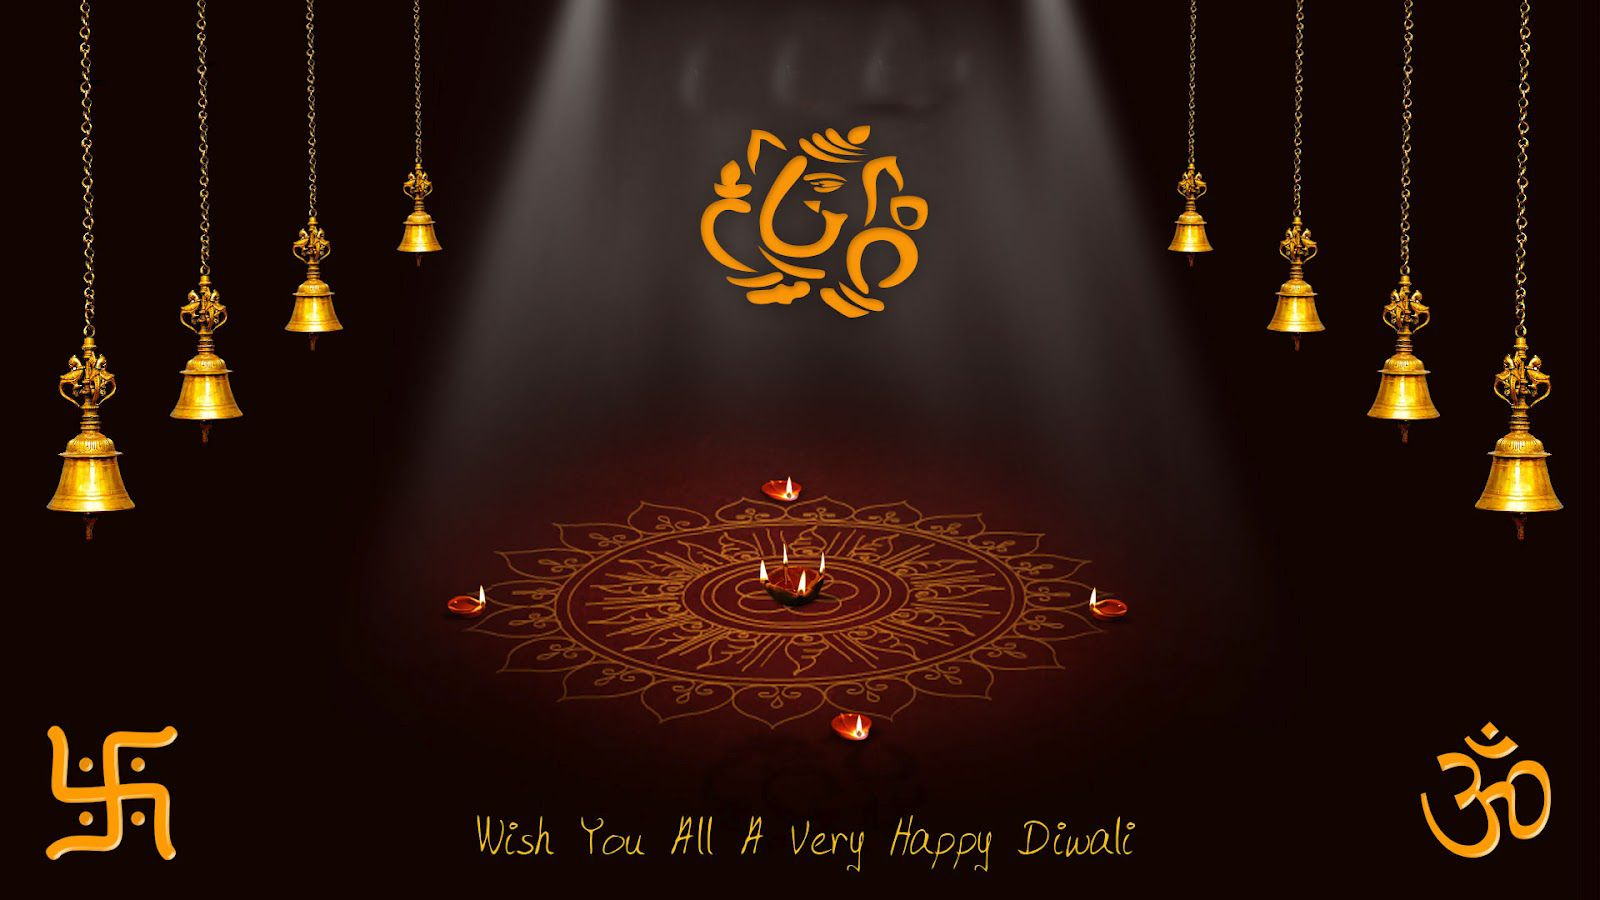 Happy diwali 2015 download free new sms images and greeting cards happy diwali 2015 download free new sms images and greeting cards http kristyandbryce Images